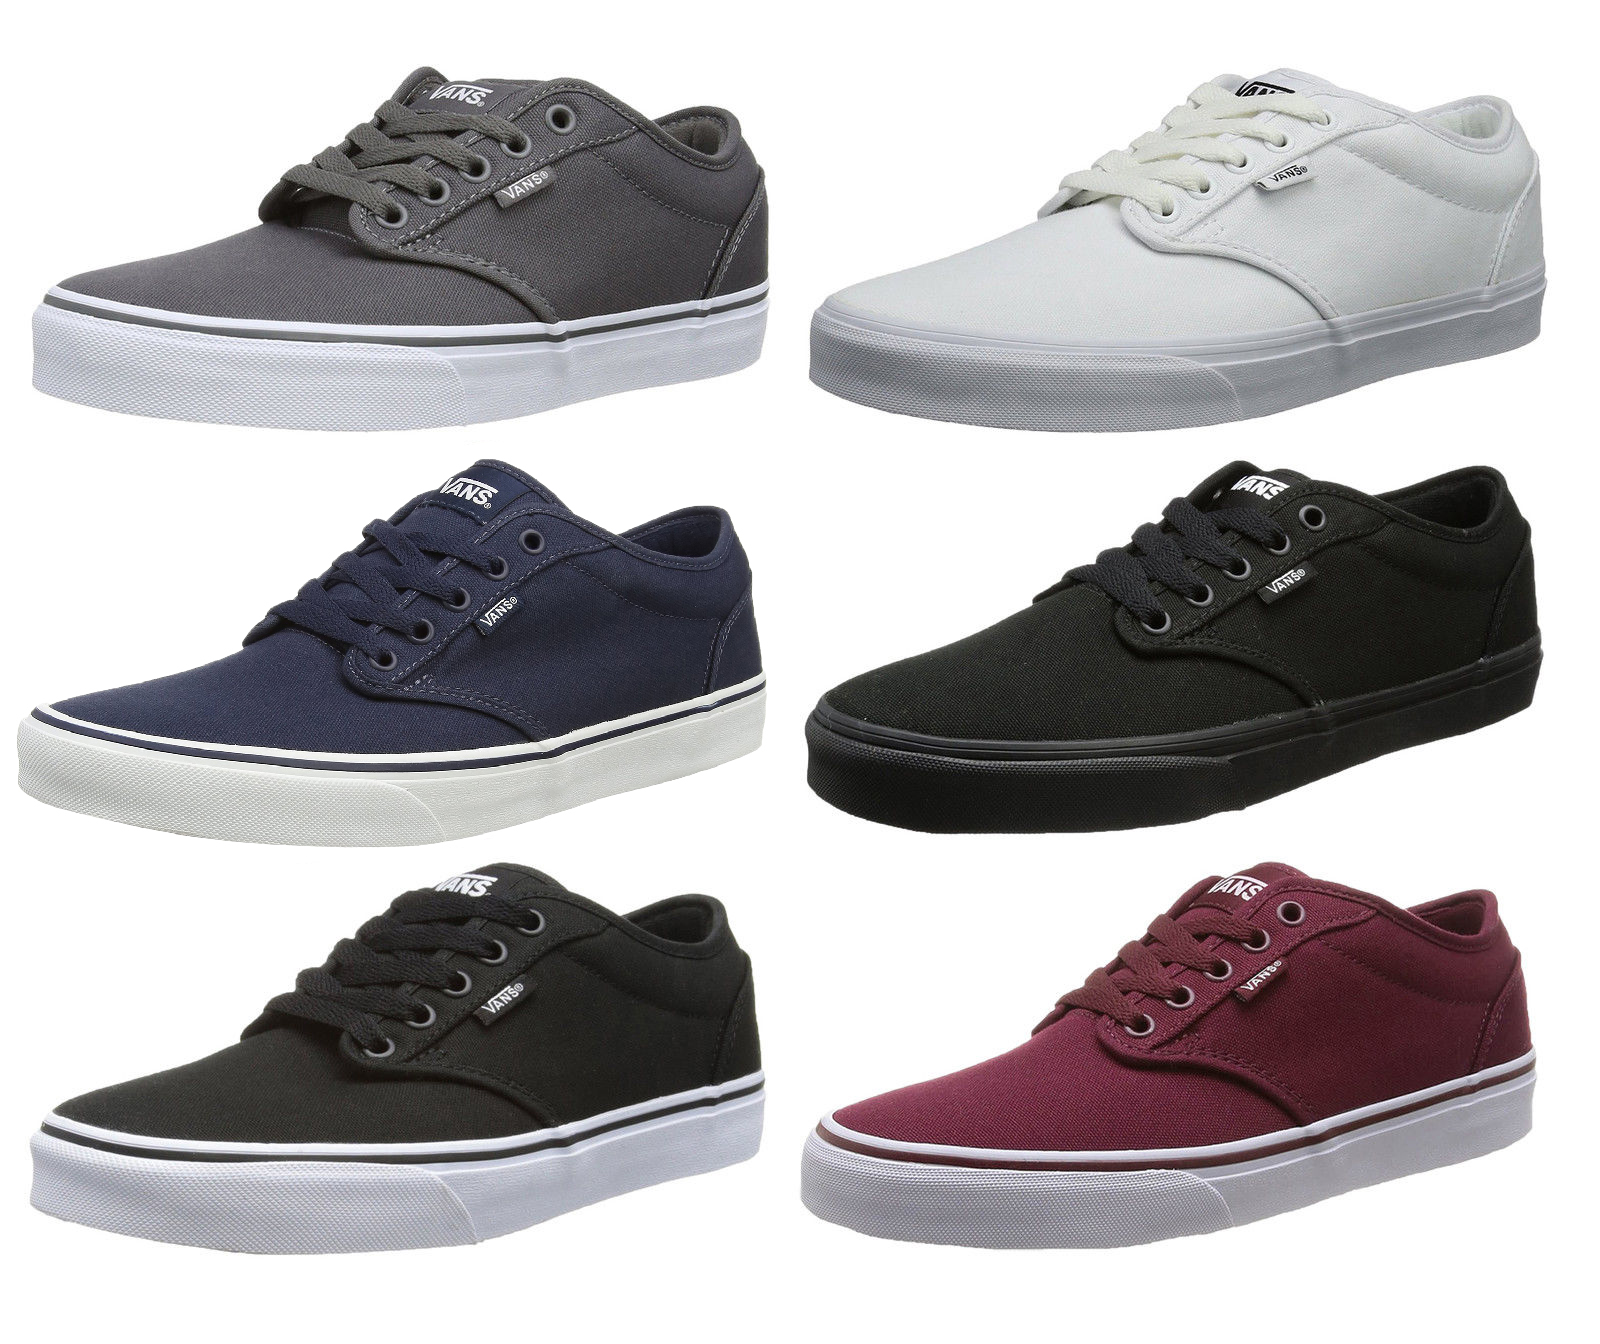 7a90176f05c1b4 VANS Atwood Canvas Fashion Skater Shoes Plimsolls Grey Navy Black ...